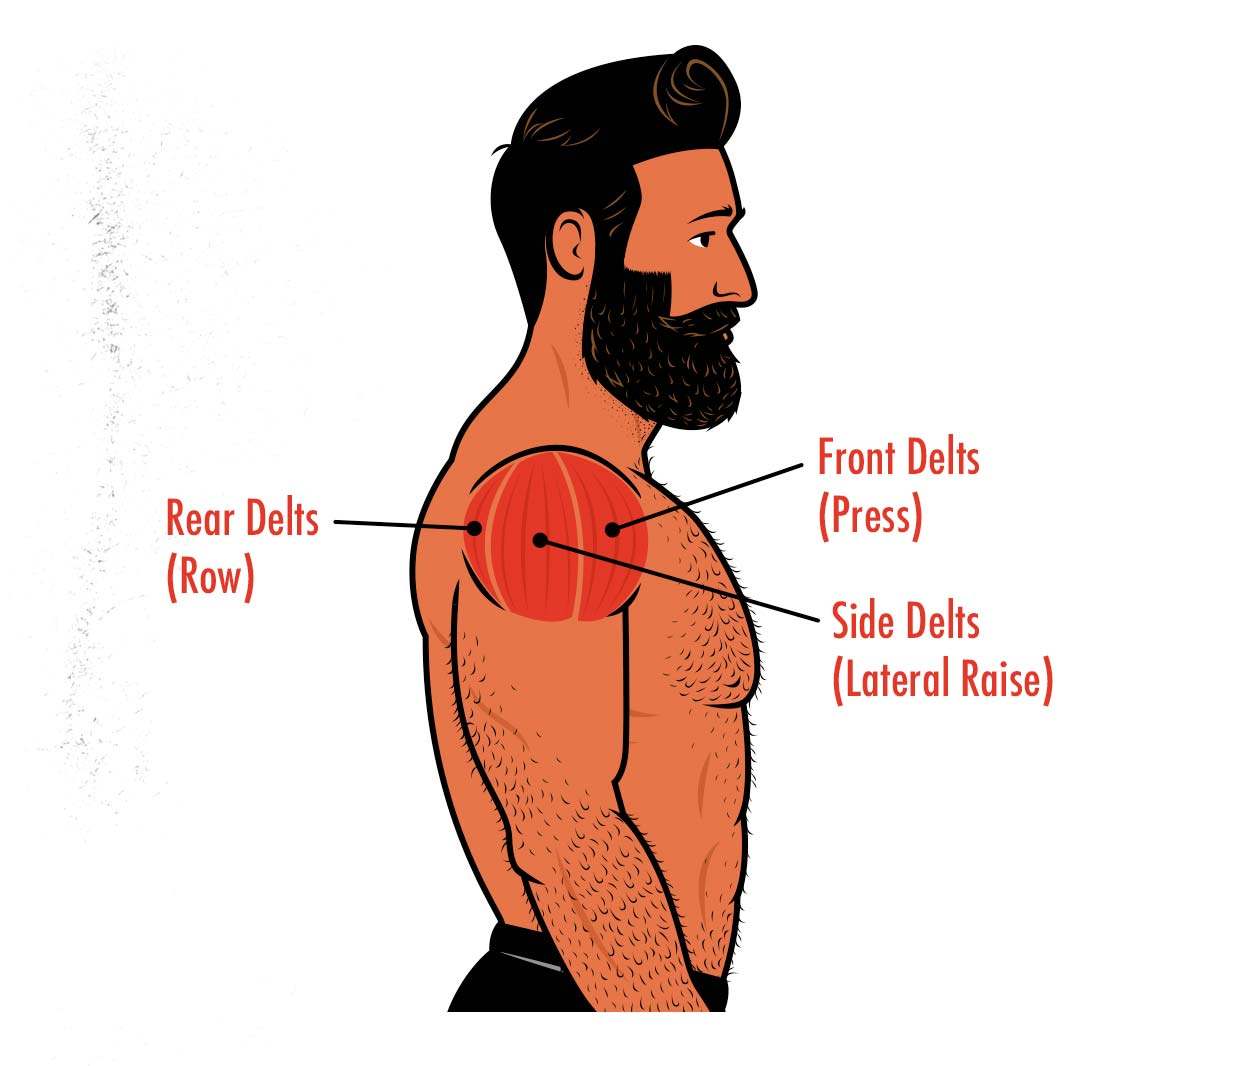 Diagram showing our shoulder muscles and how to train them.